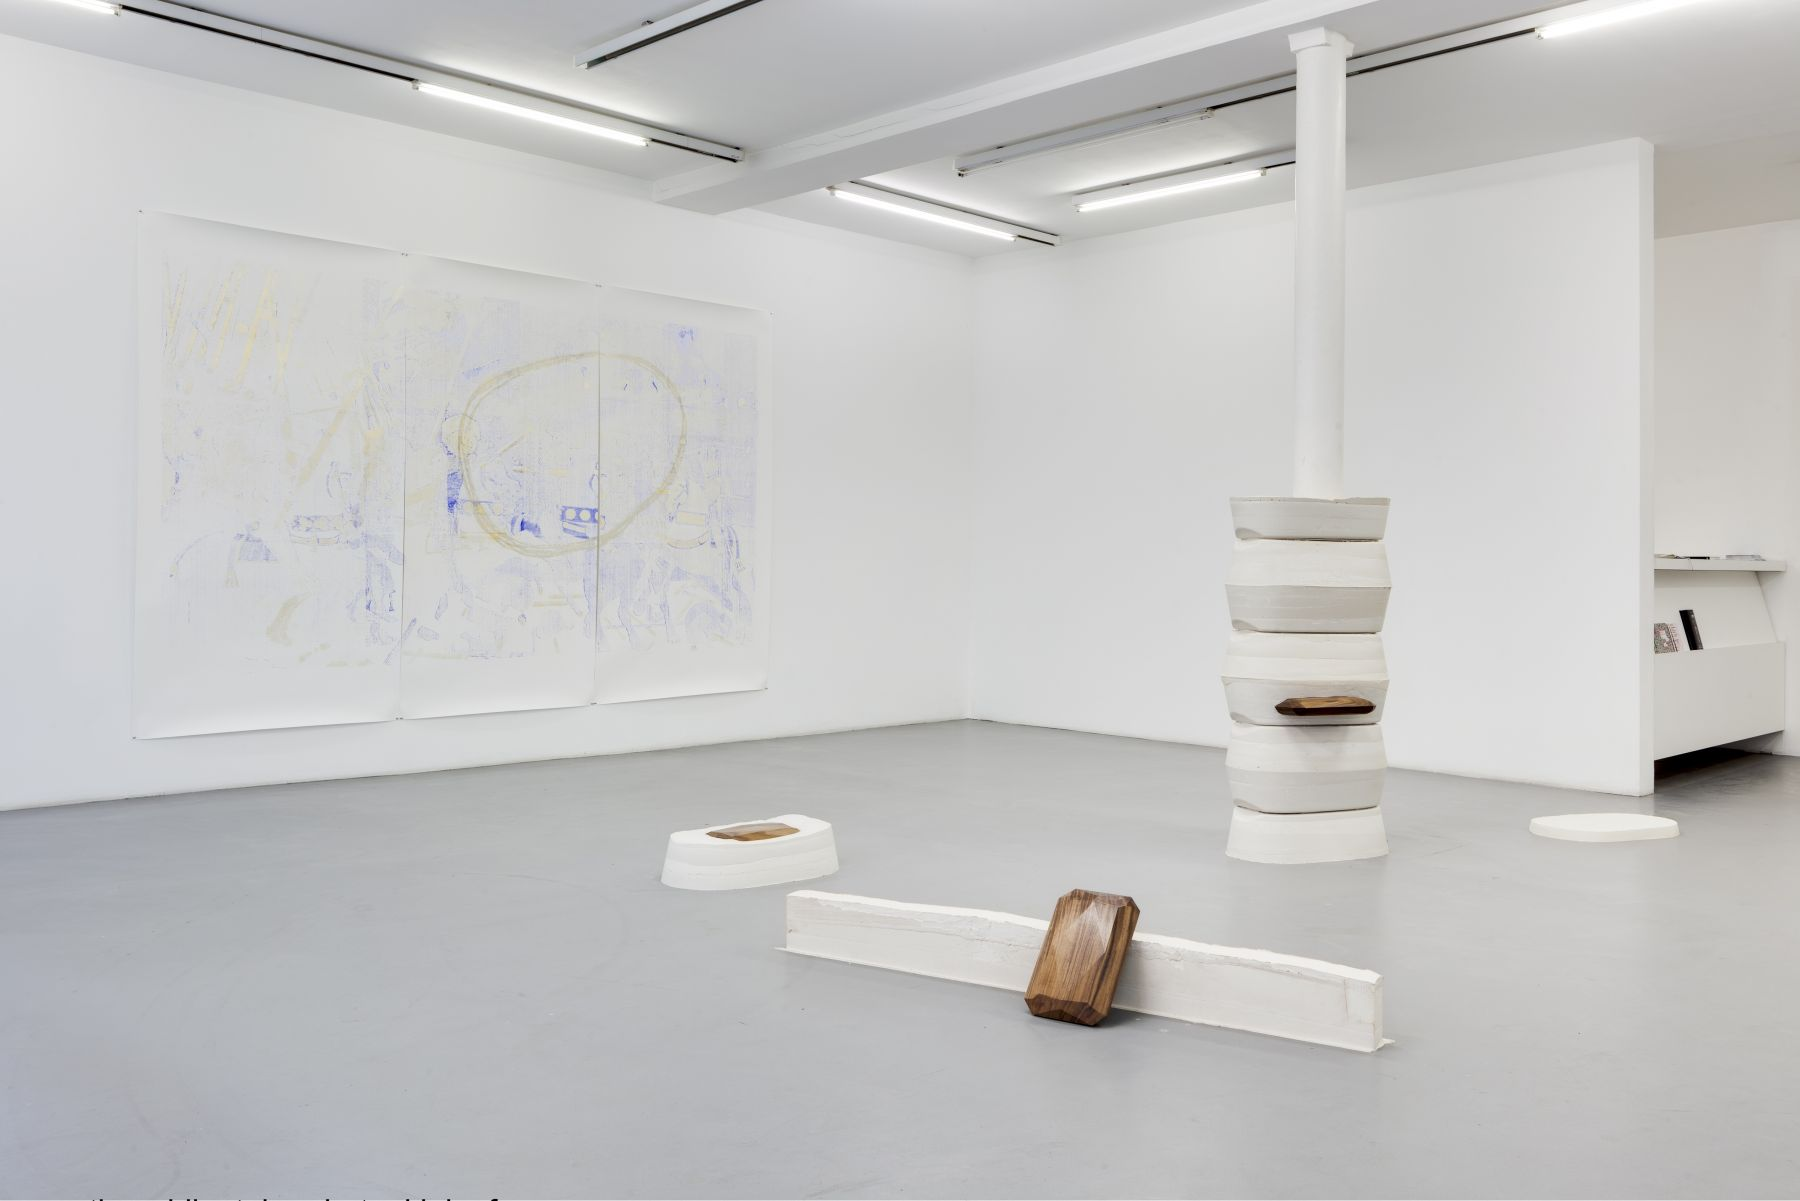 Lucy Skaer: Blanks and Ballast – installation view 1